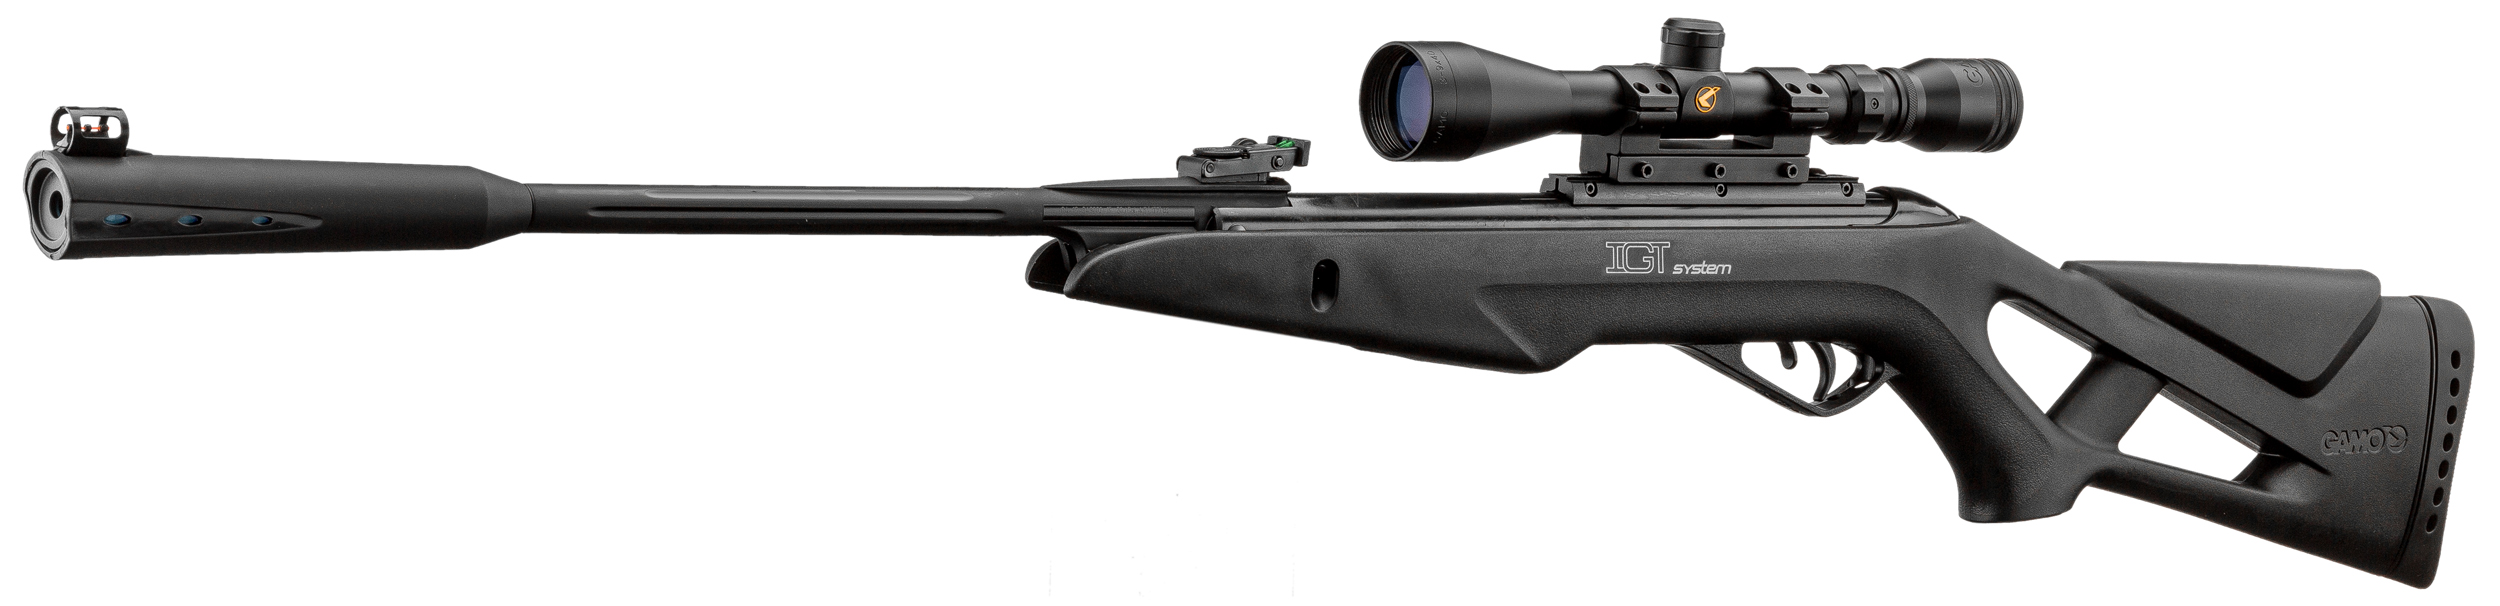 G1387 Gamo Whisper Maxxim IGT -20 Joules + lunette 4x32 - G1387